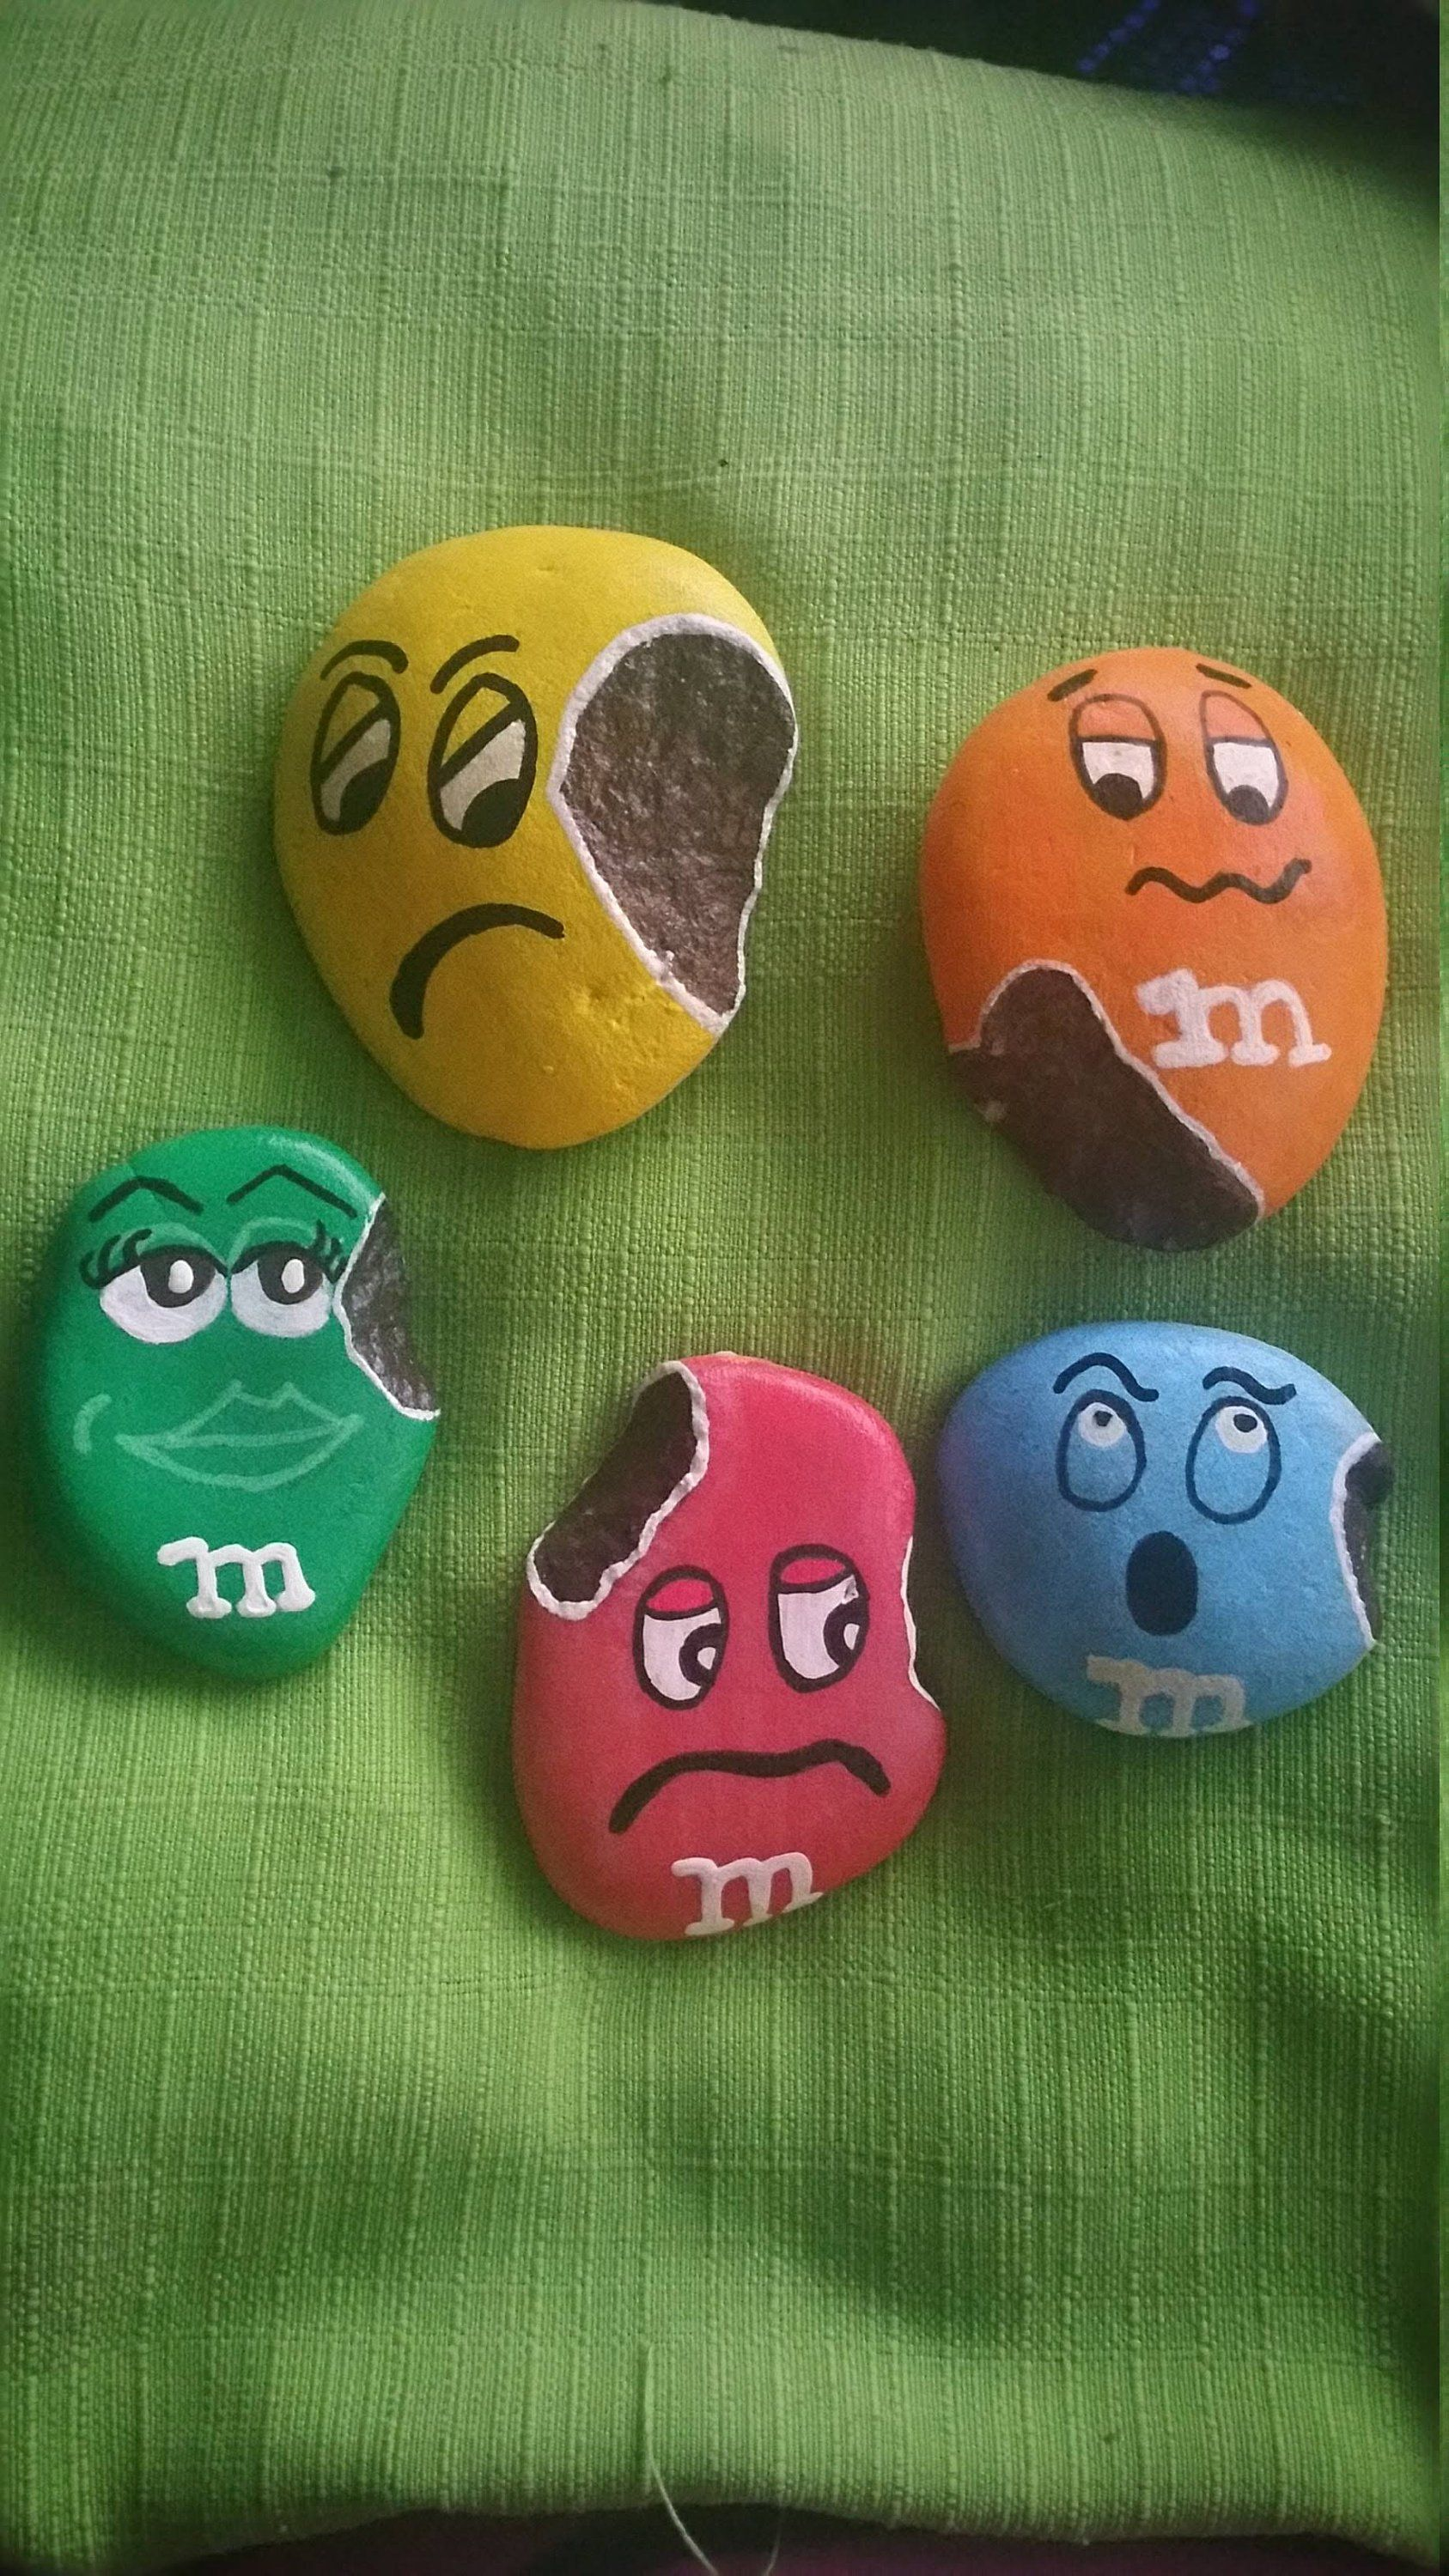 Photo of M&M Pals Painted Rocks, Rock Buddies, Home Decor, Art, Collectible, Painted Rock, Painted Stone, Candy Painted Rock, Play Kithen Food